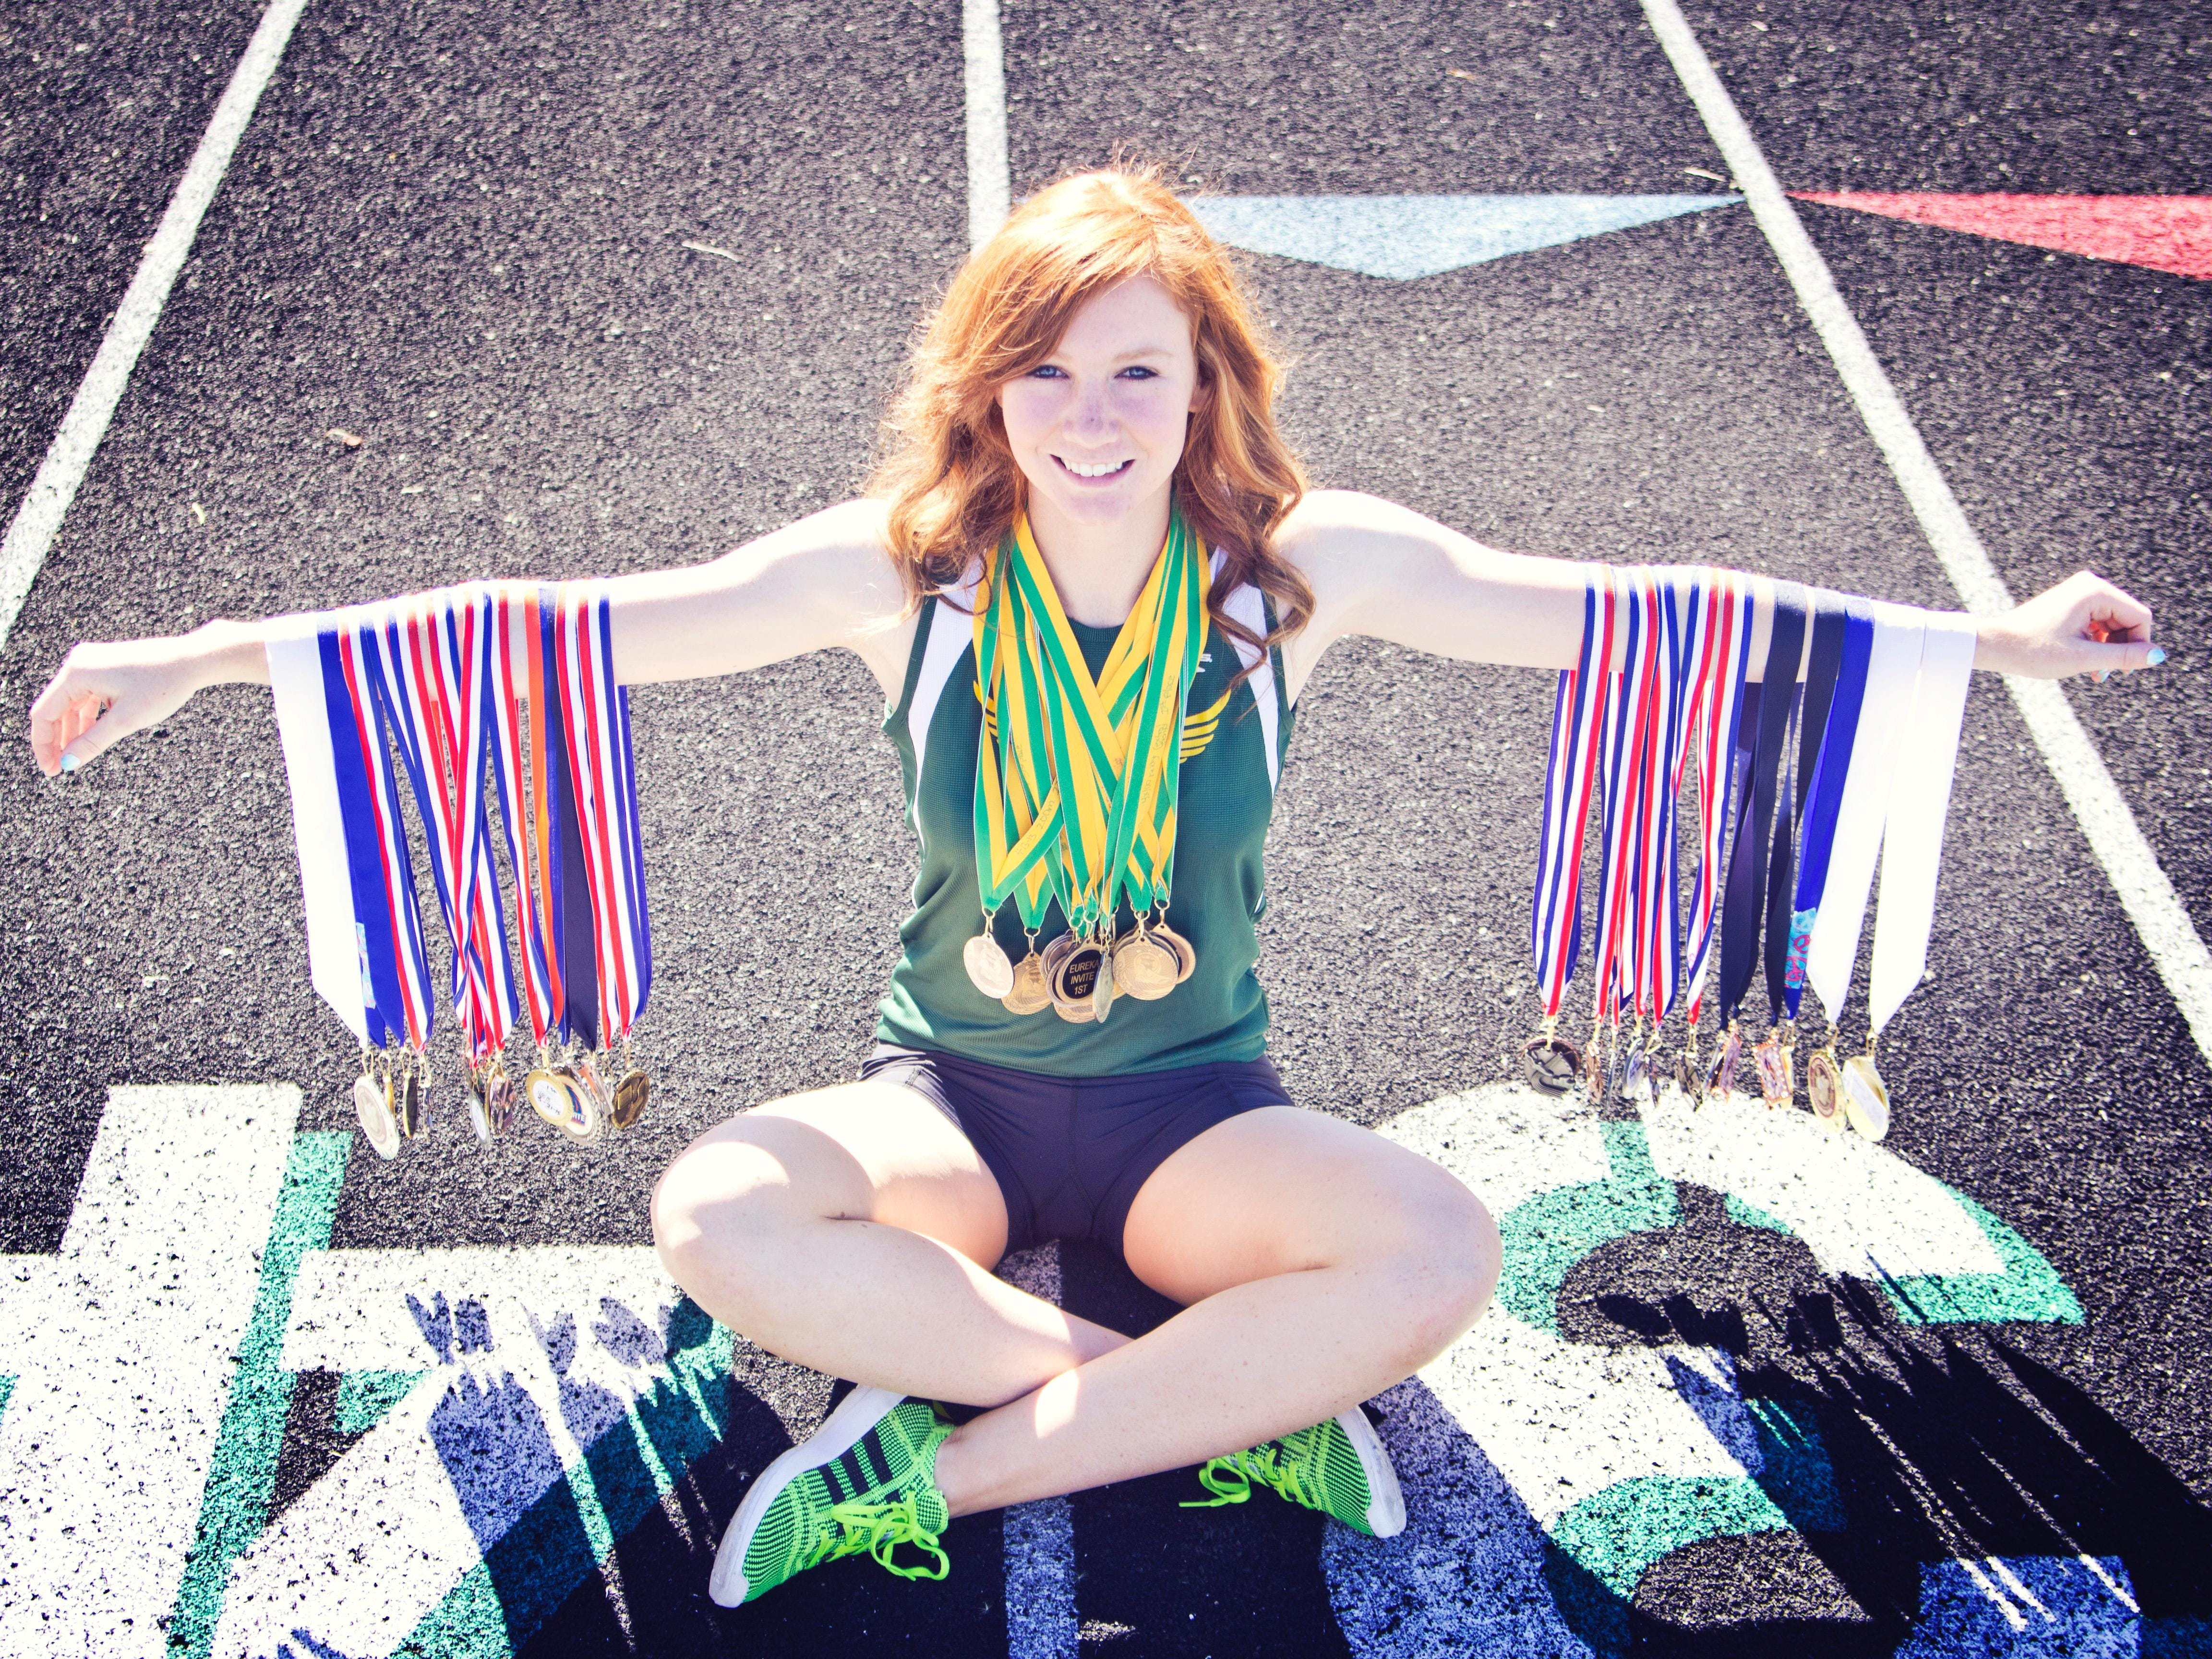 Megan Damele from Eureka is one of the NIAA's top 10 student-athletes from Northern Nevada.